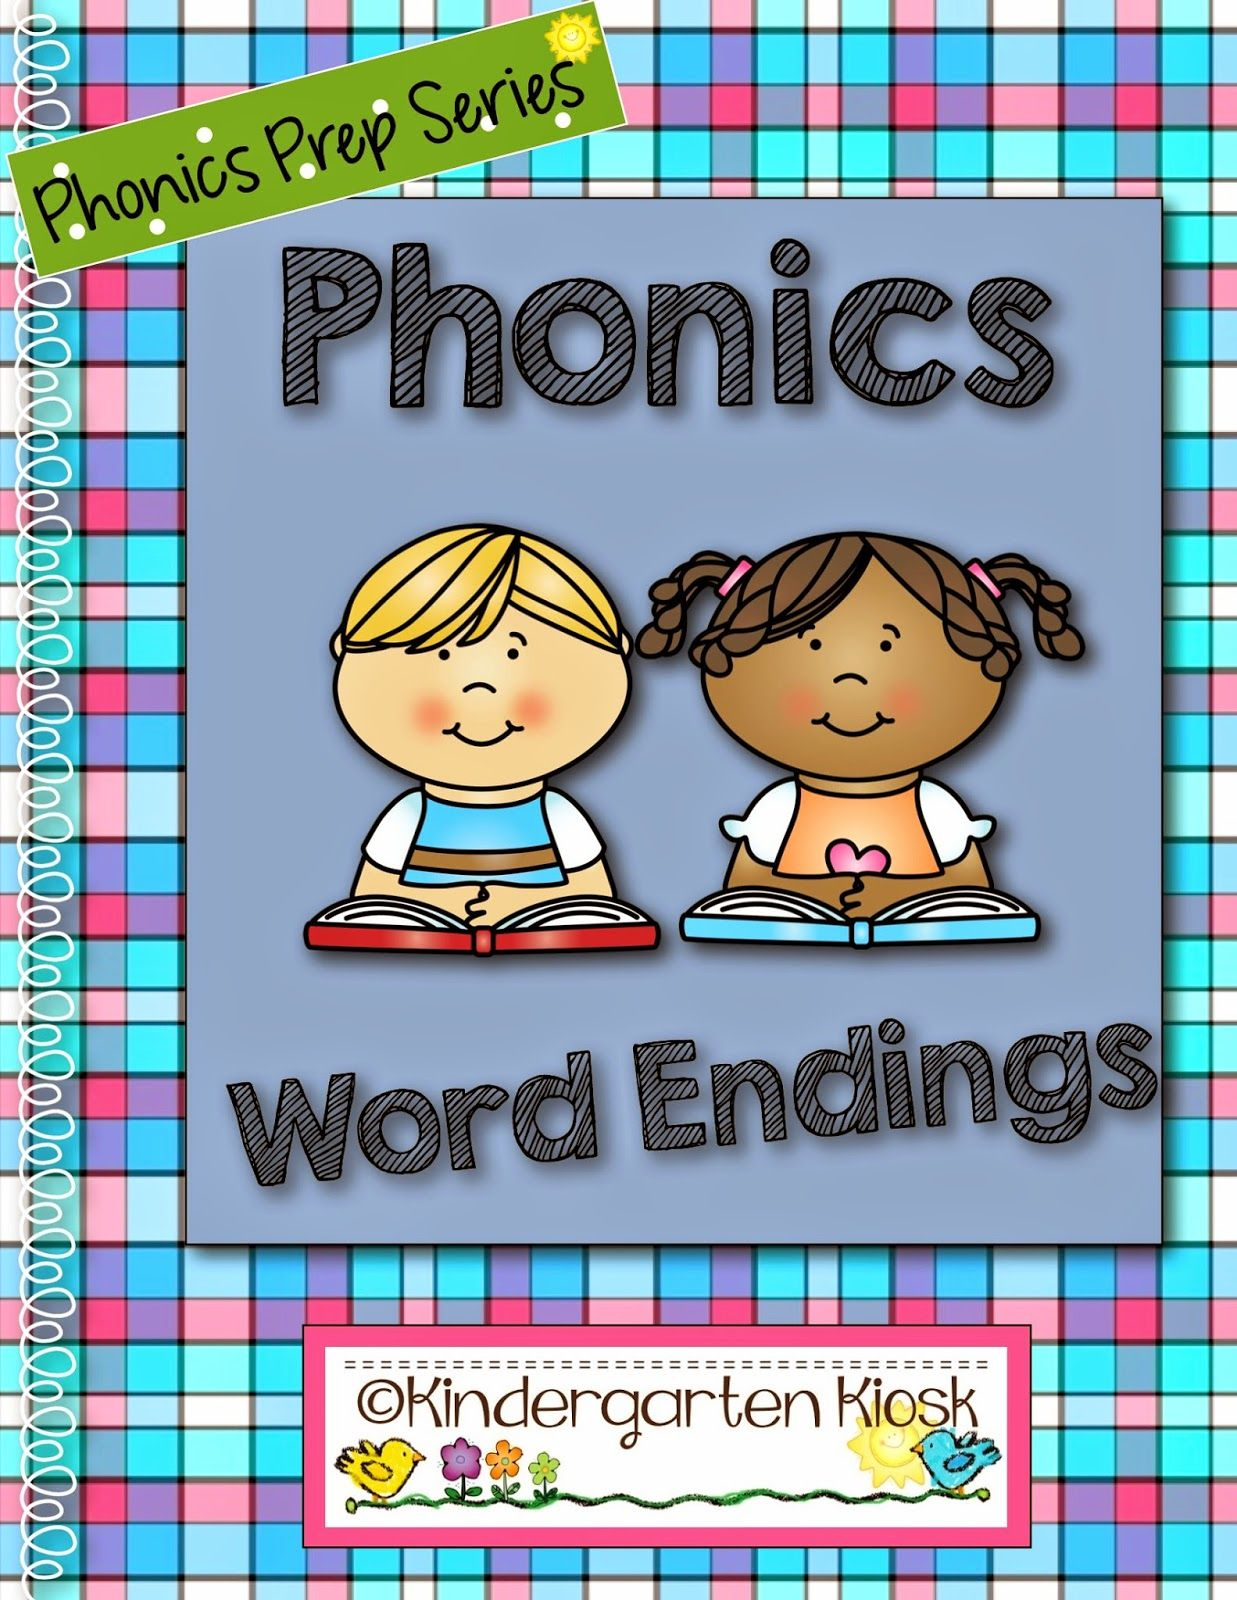 Inflectional Word Endings Phonics Prep Series